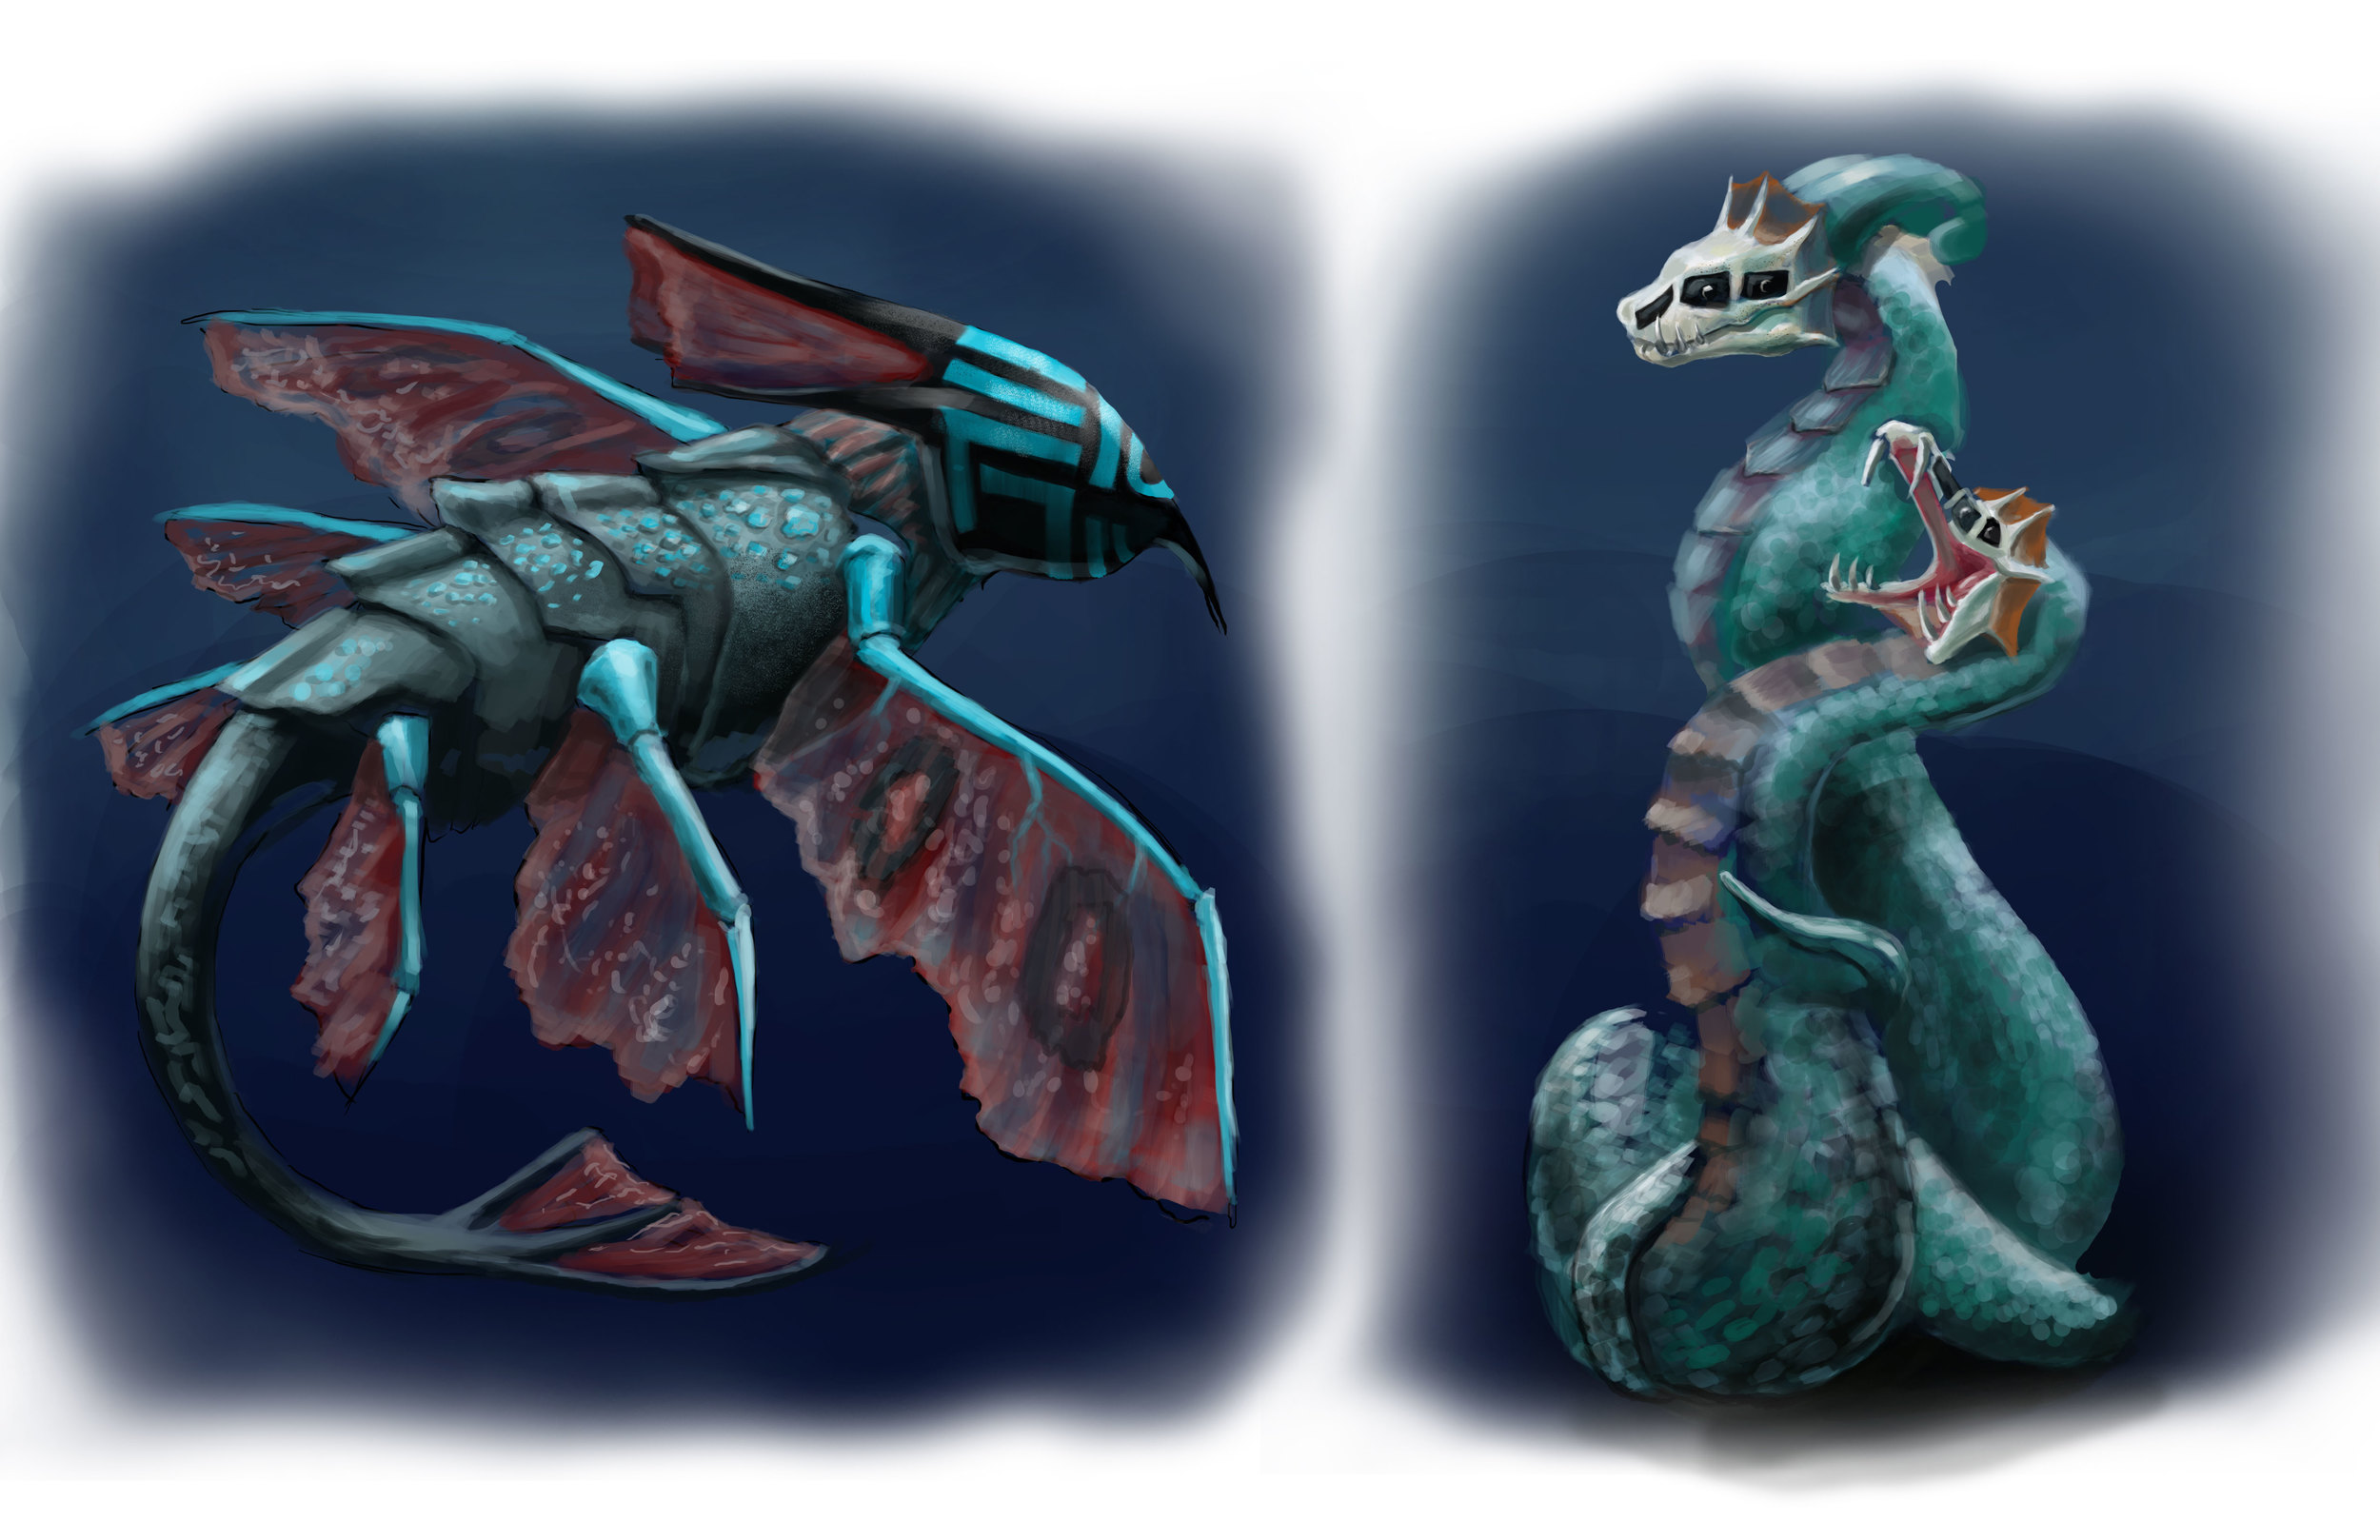 Water Creatures June 2015